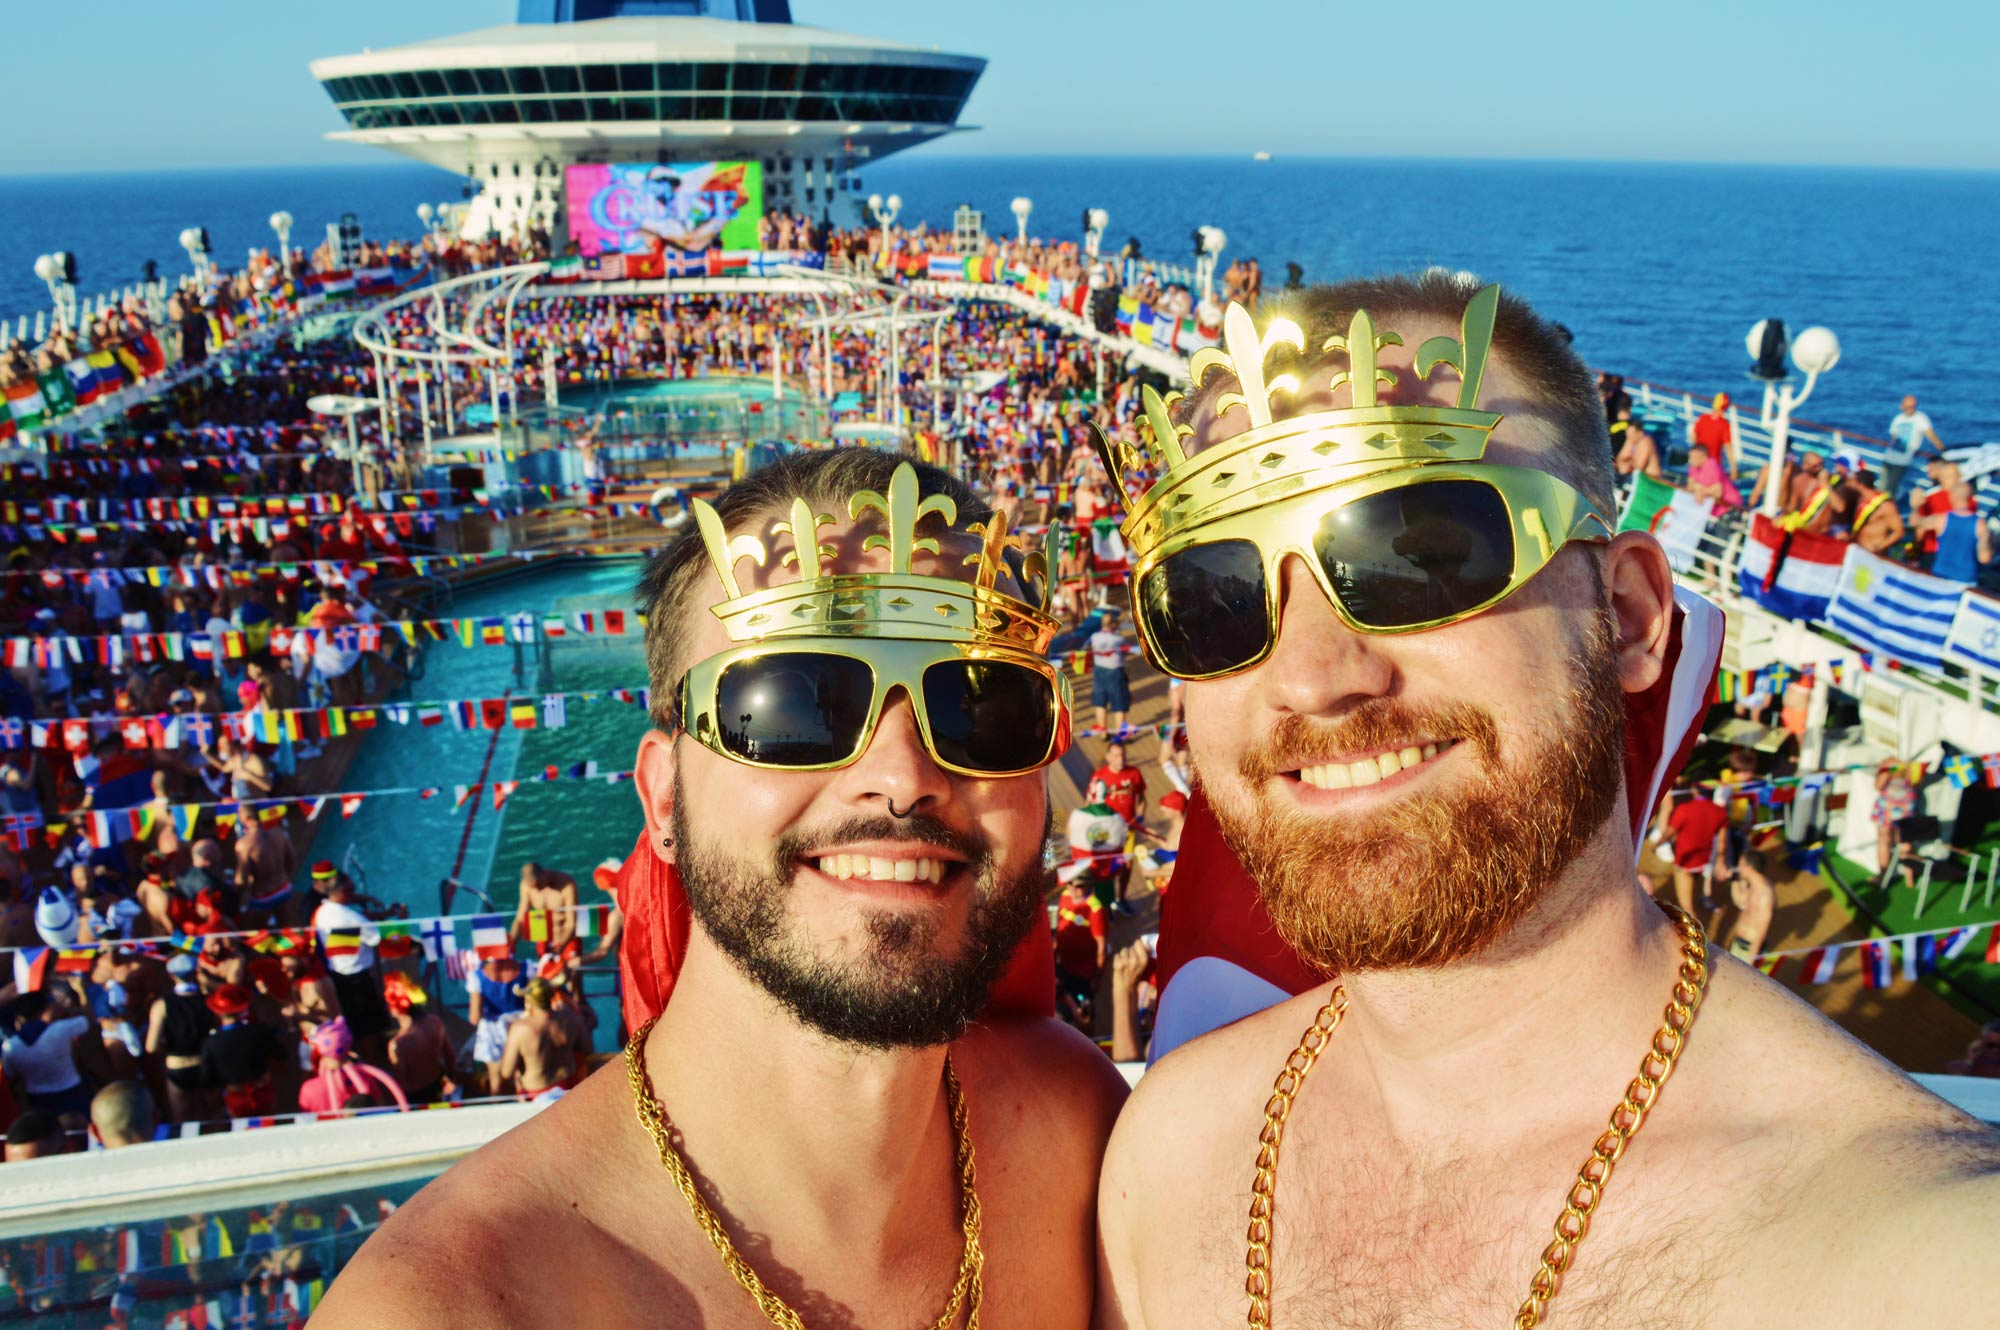 from Finn gay couple cruises